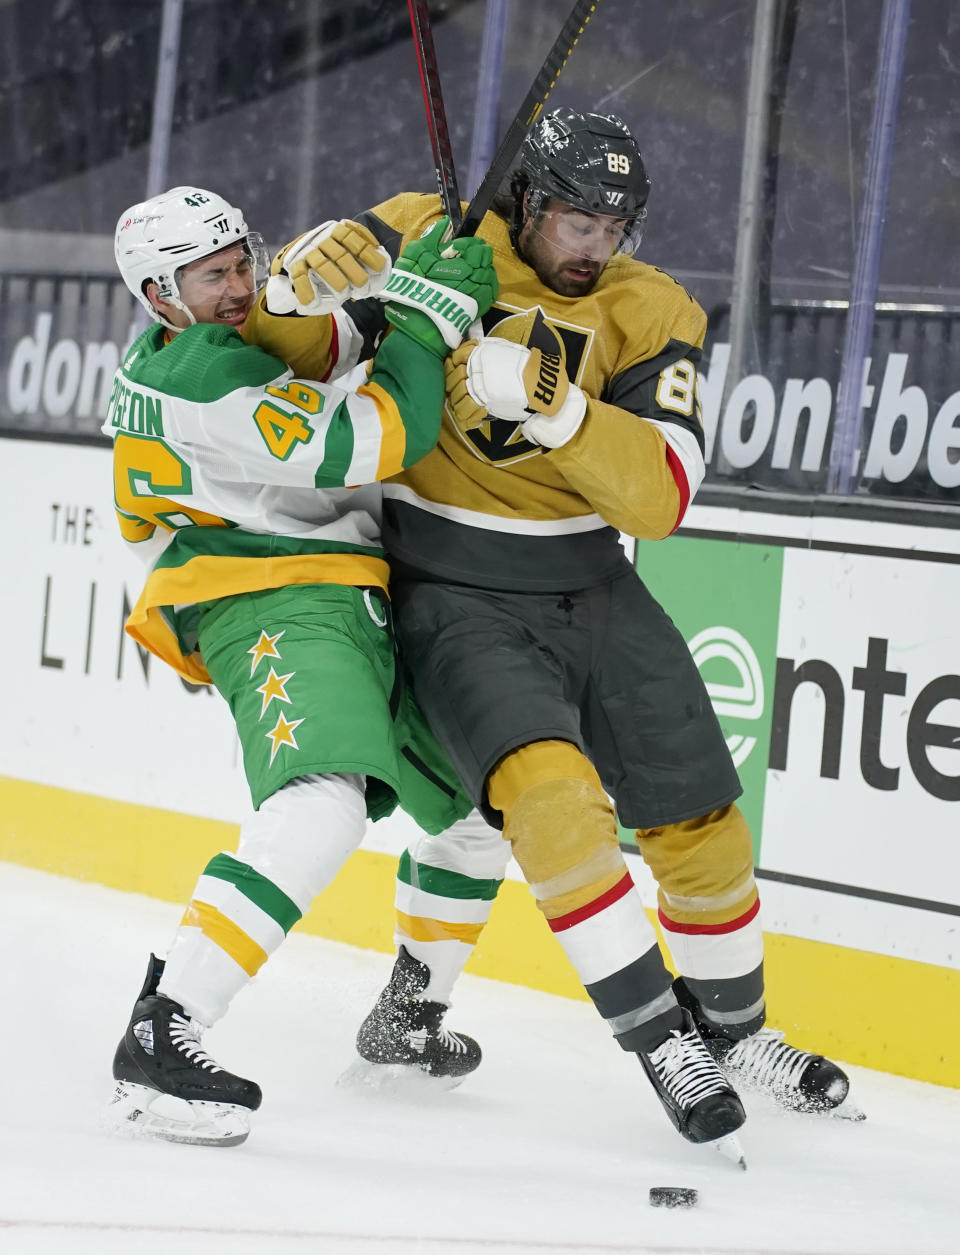 Minnesota Wild defenseman Jared Spurgeon (46) vies for the puck with Vegas Golden Knights right wing Alex Tuch (89) during the second period of an NHL hockey game Wednesday, March 3, 2021, in Las Vegas. (AP Photo/John Locher)